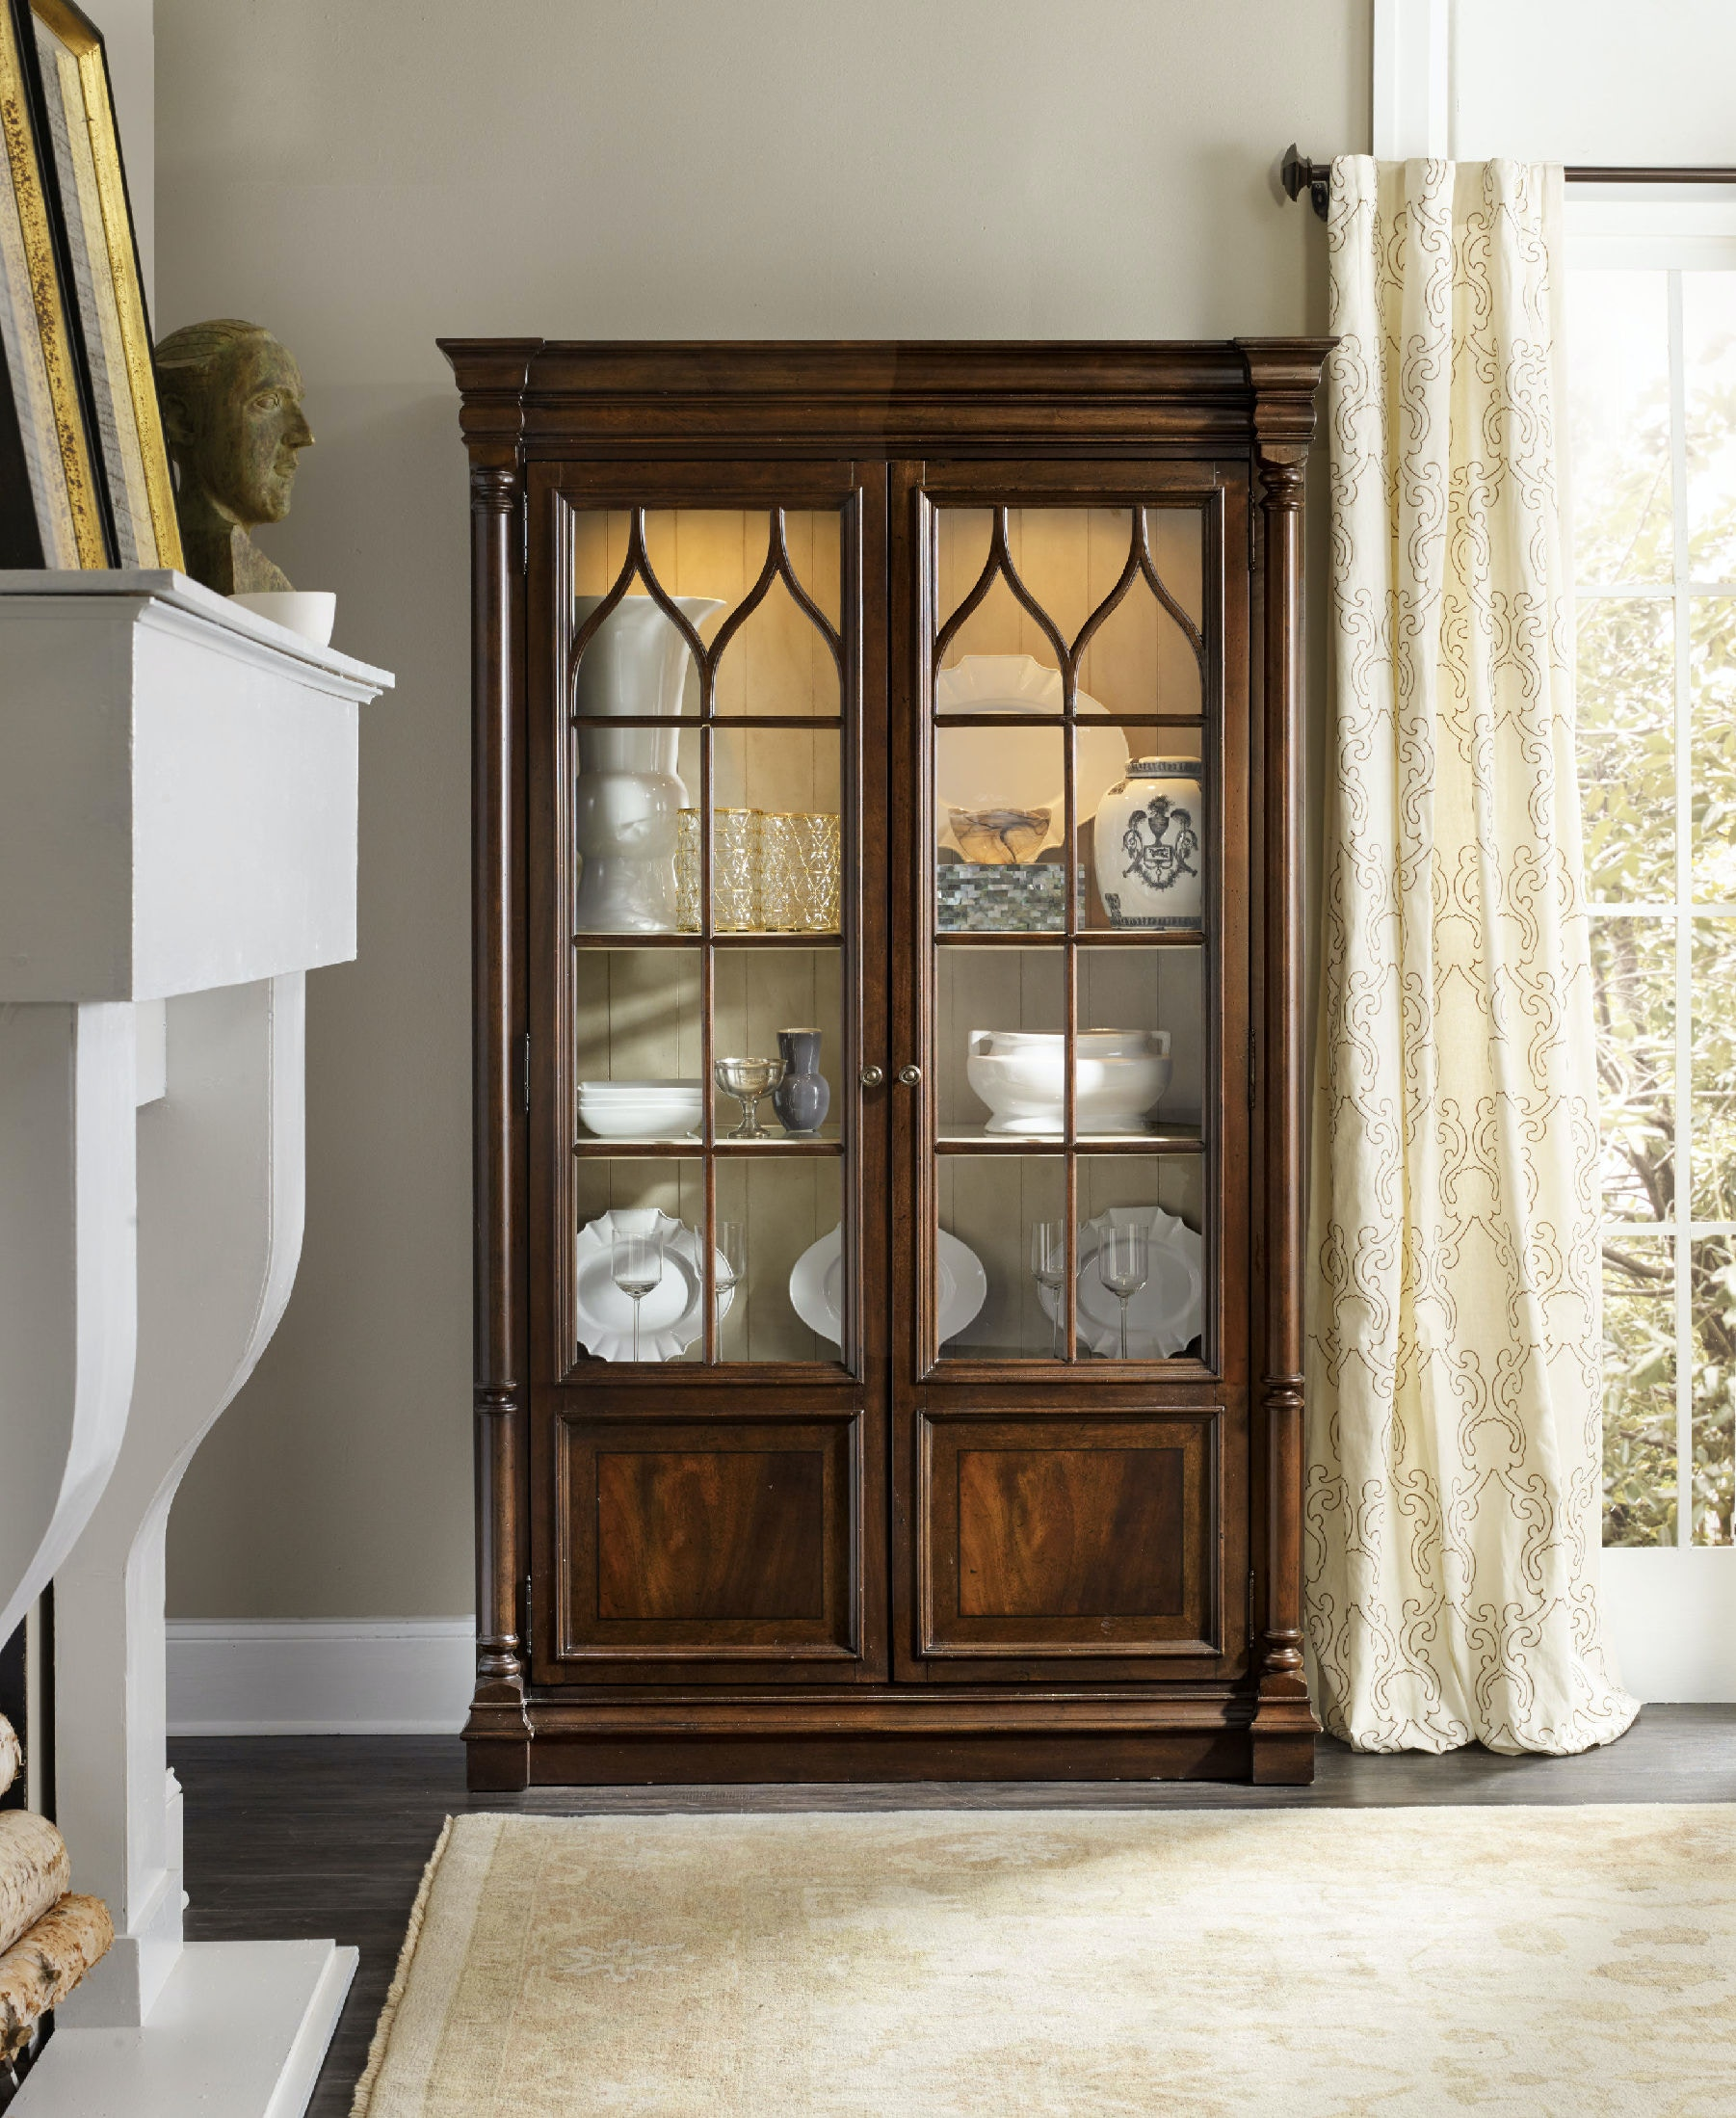 Hooker Furniture Dining Room Leesburg Display Cabinet 5381-75906